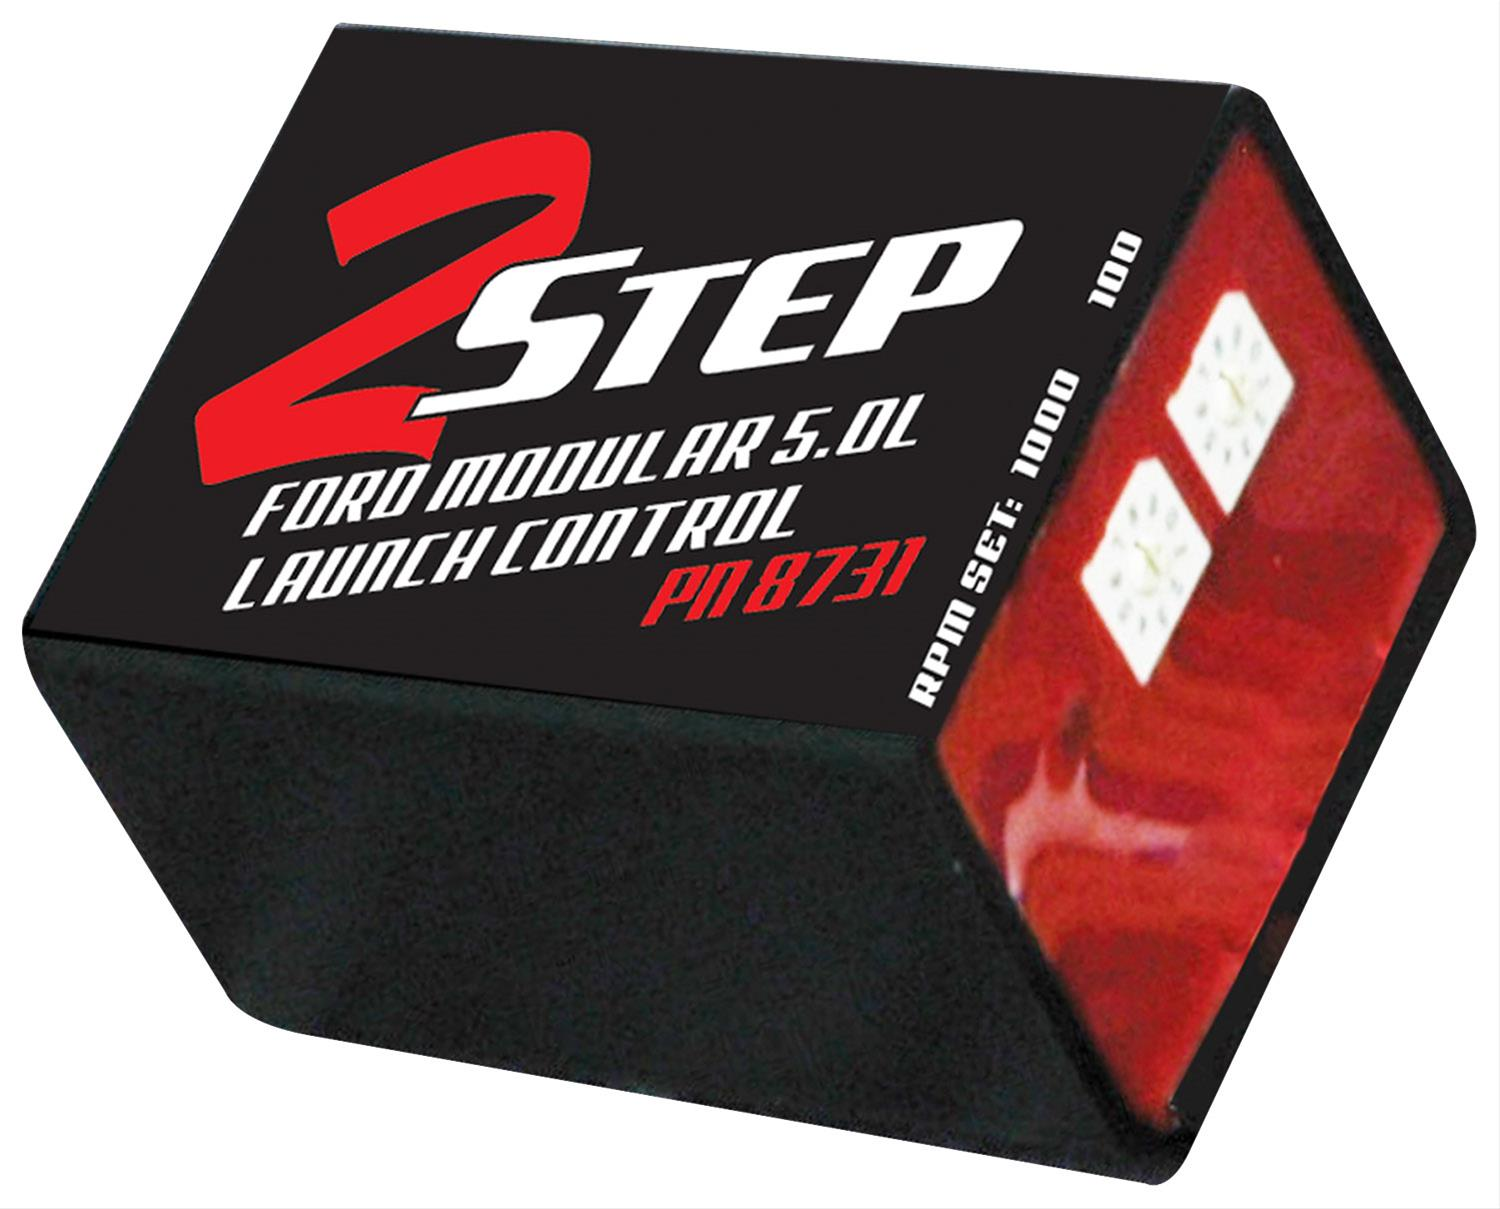 Msd 2 Step Launch Controllers 8731 Free Shipping On Orders Over